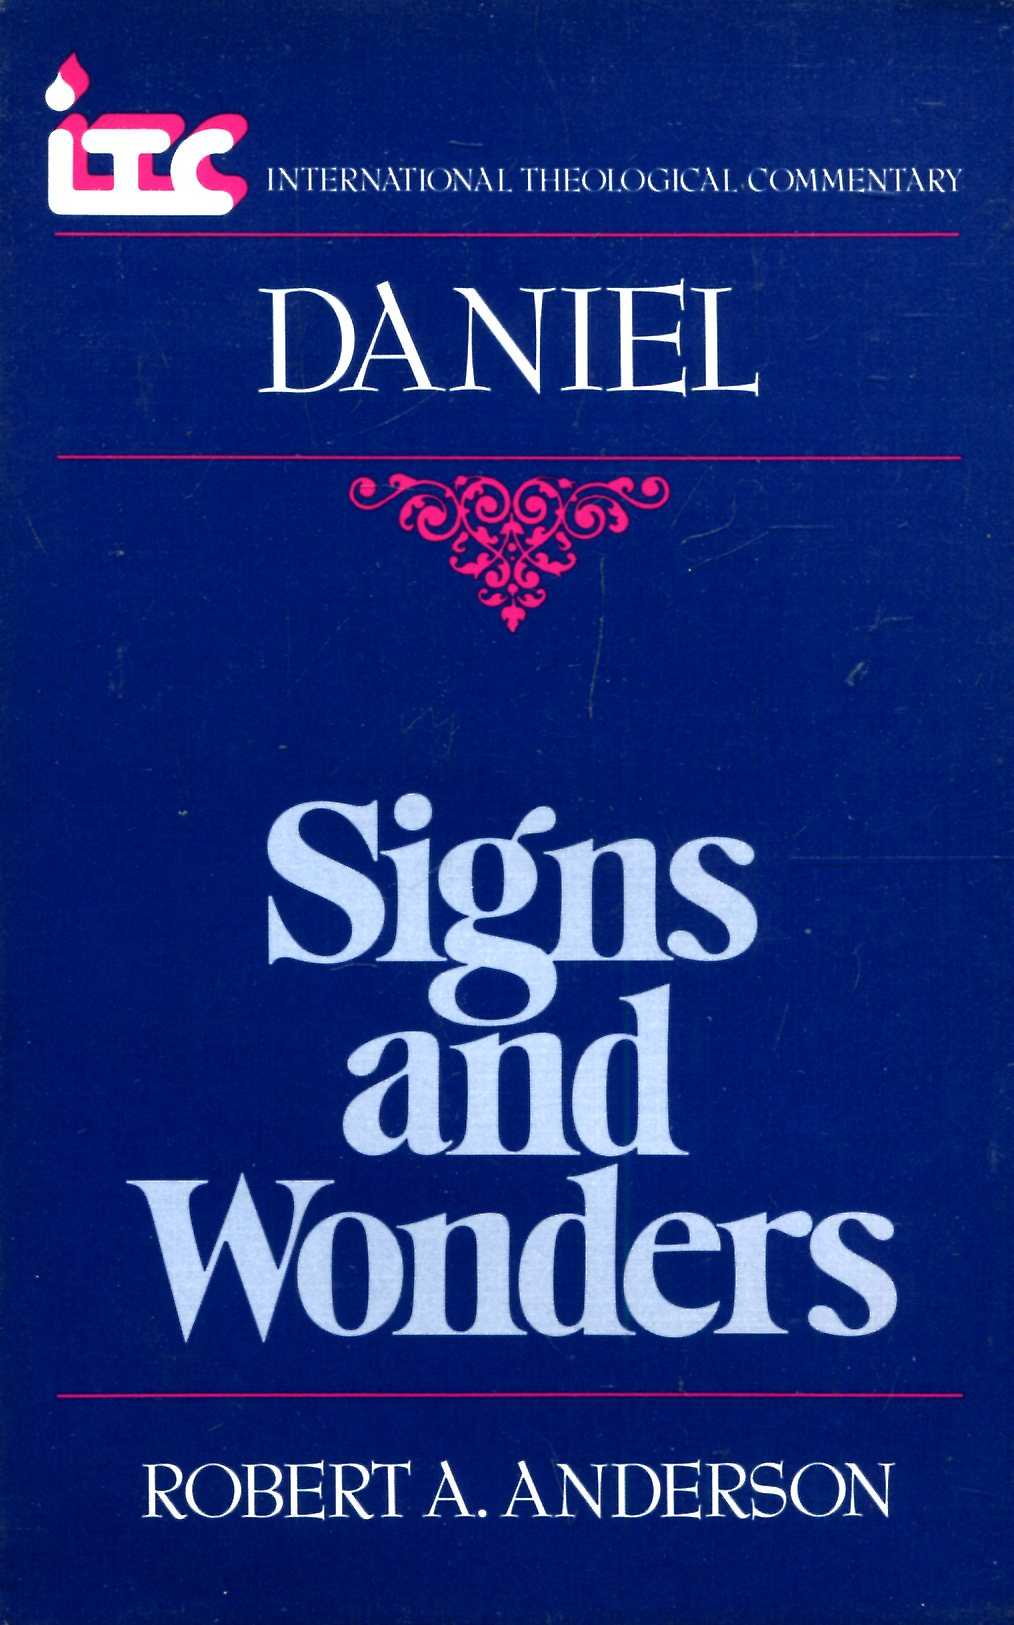 Image for Daniel: Signs and Wonders (International Theological Commentary)